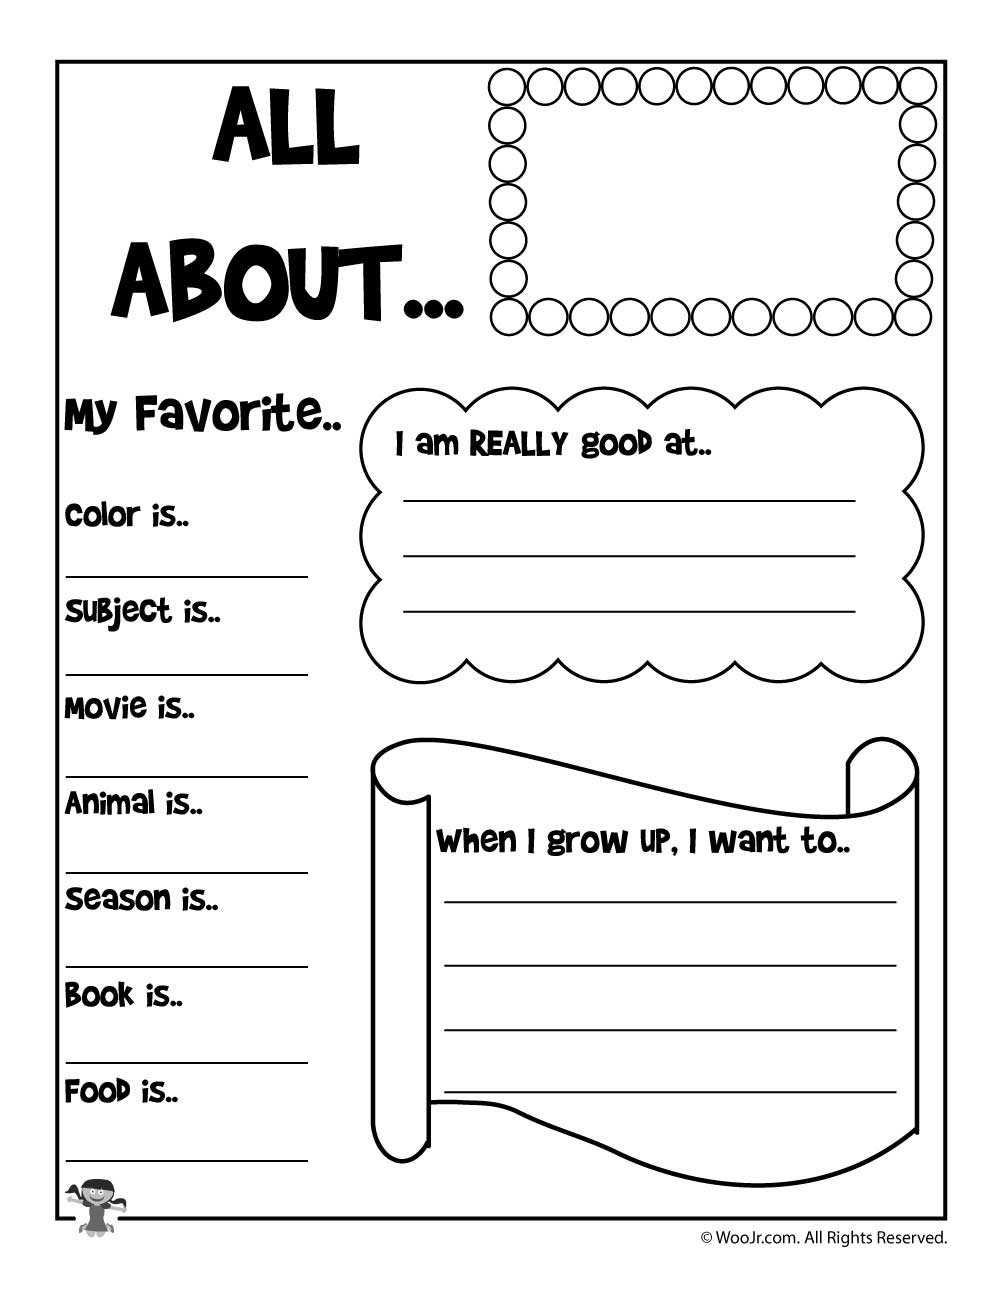 All about me worksheet free 3rd grade